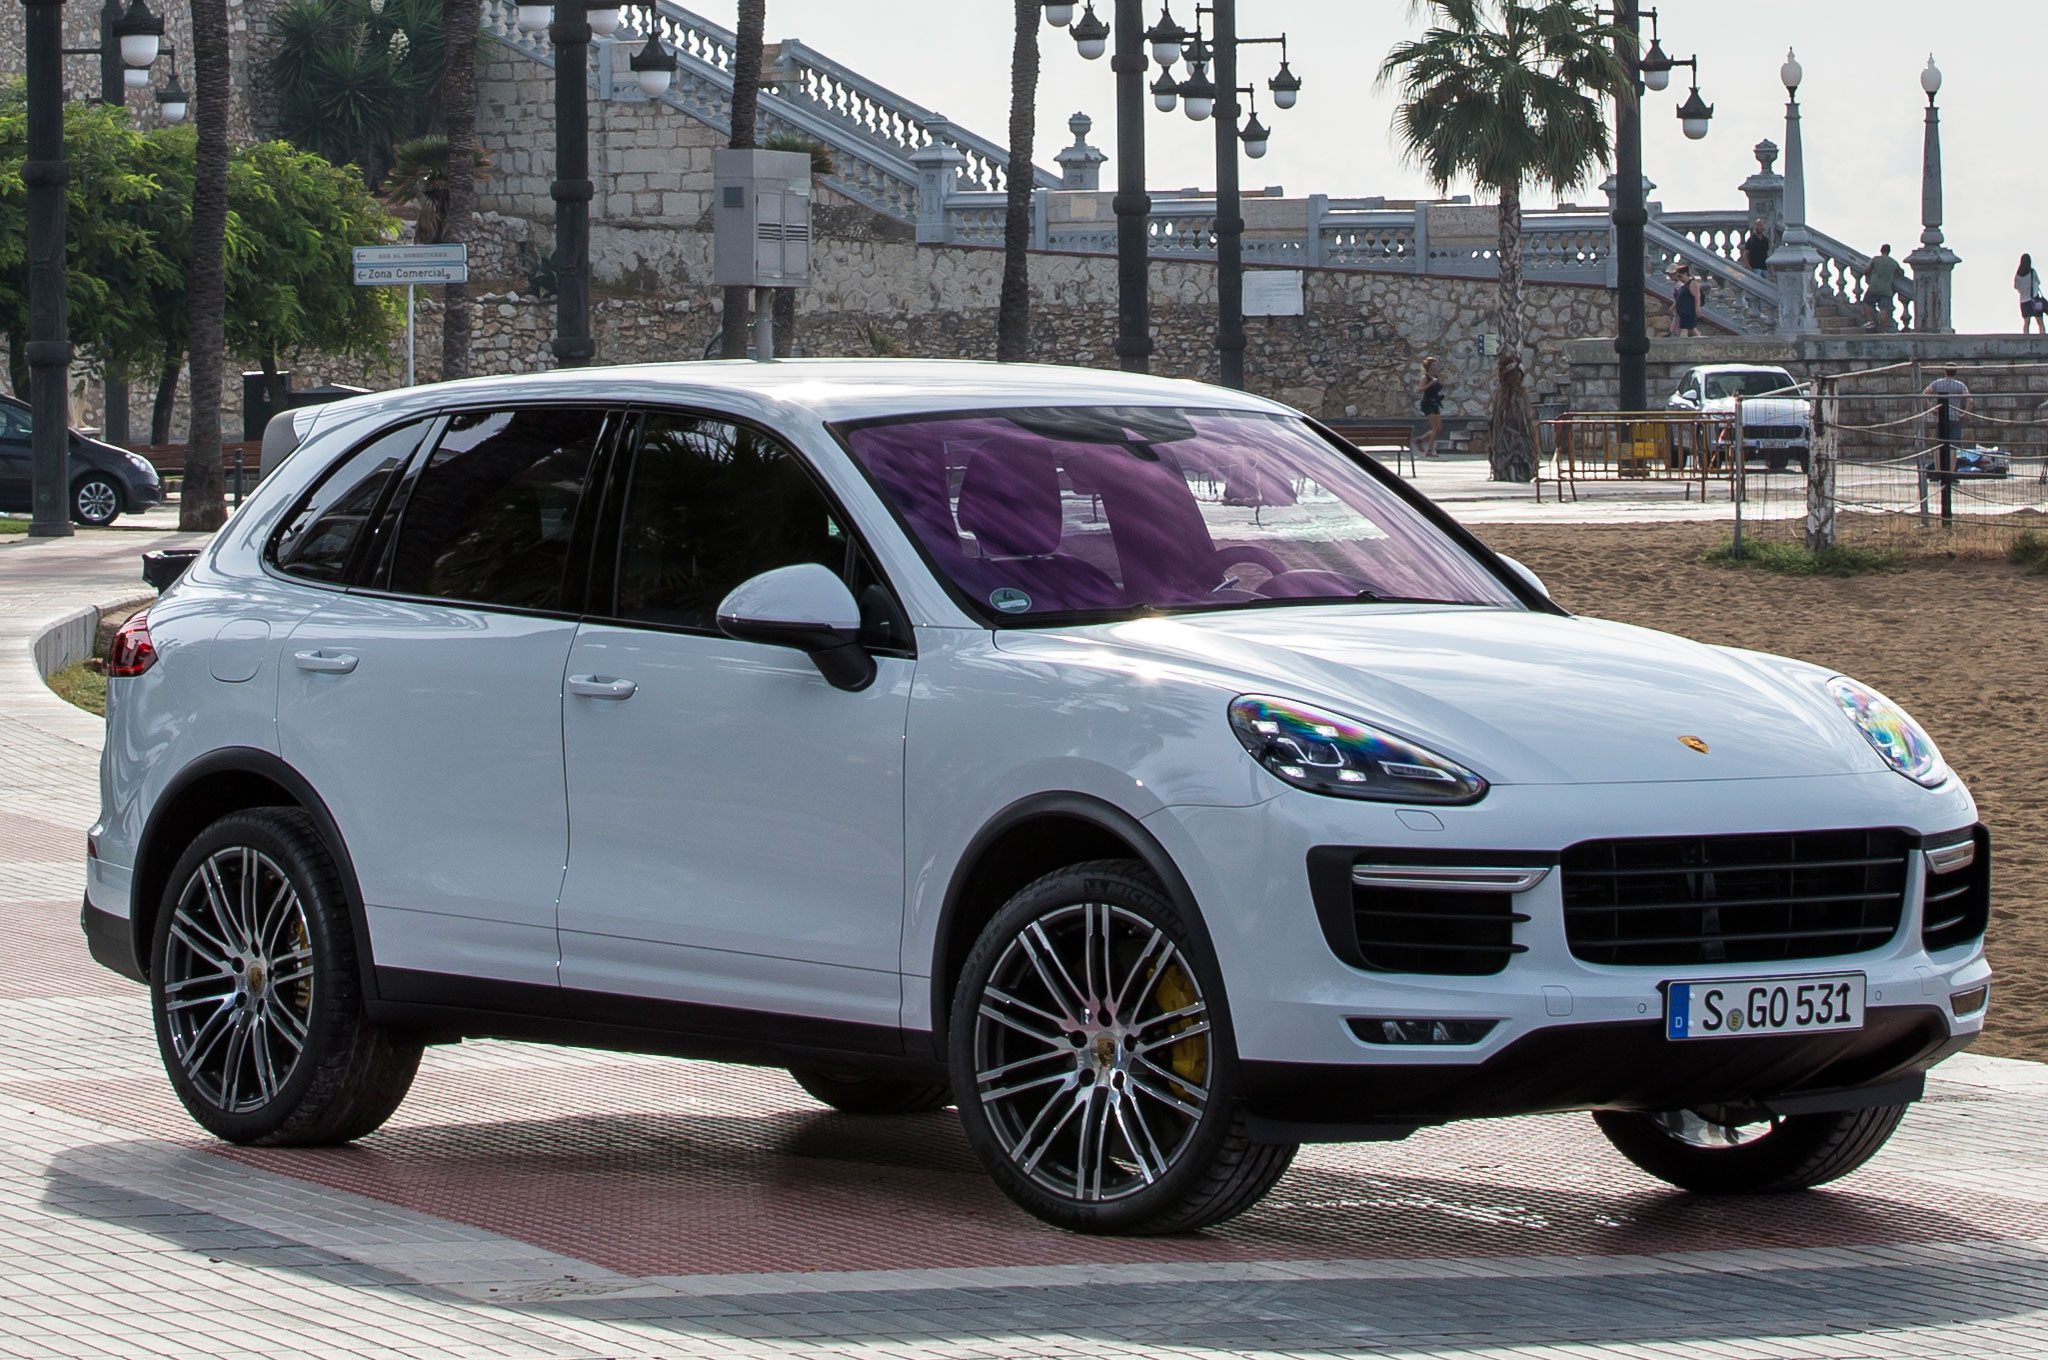 2015 Porsche Cayenne Turbo Front Three Quarter View 1